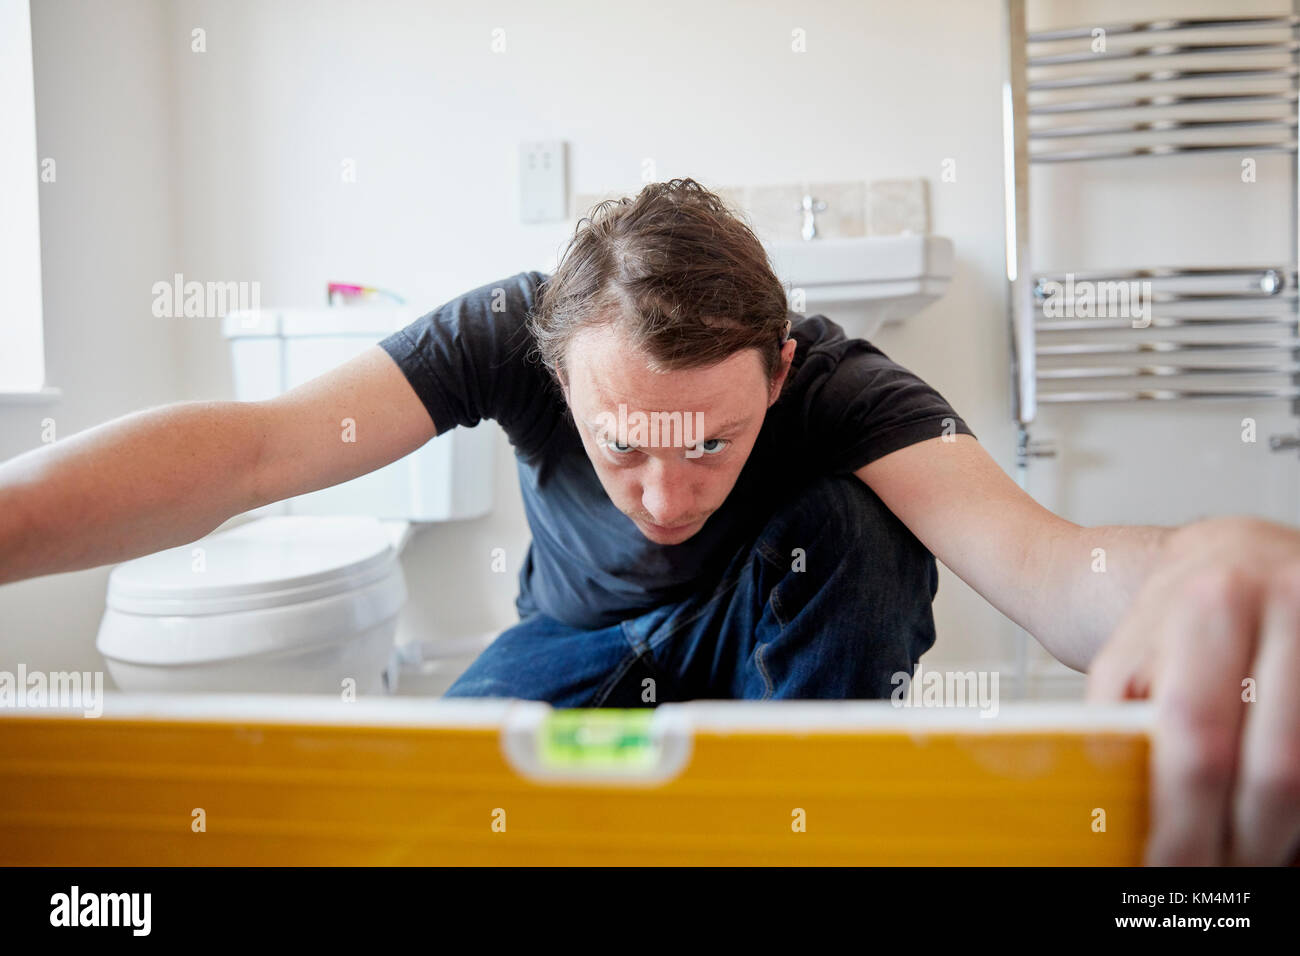 A builder using a spirit level to check his work, refurbushing a bathroom. - Stock Image